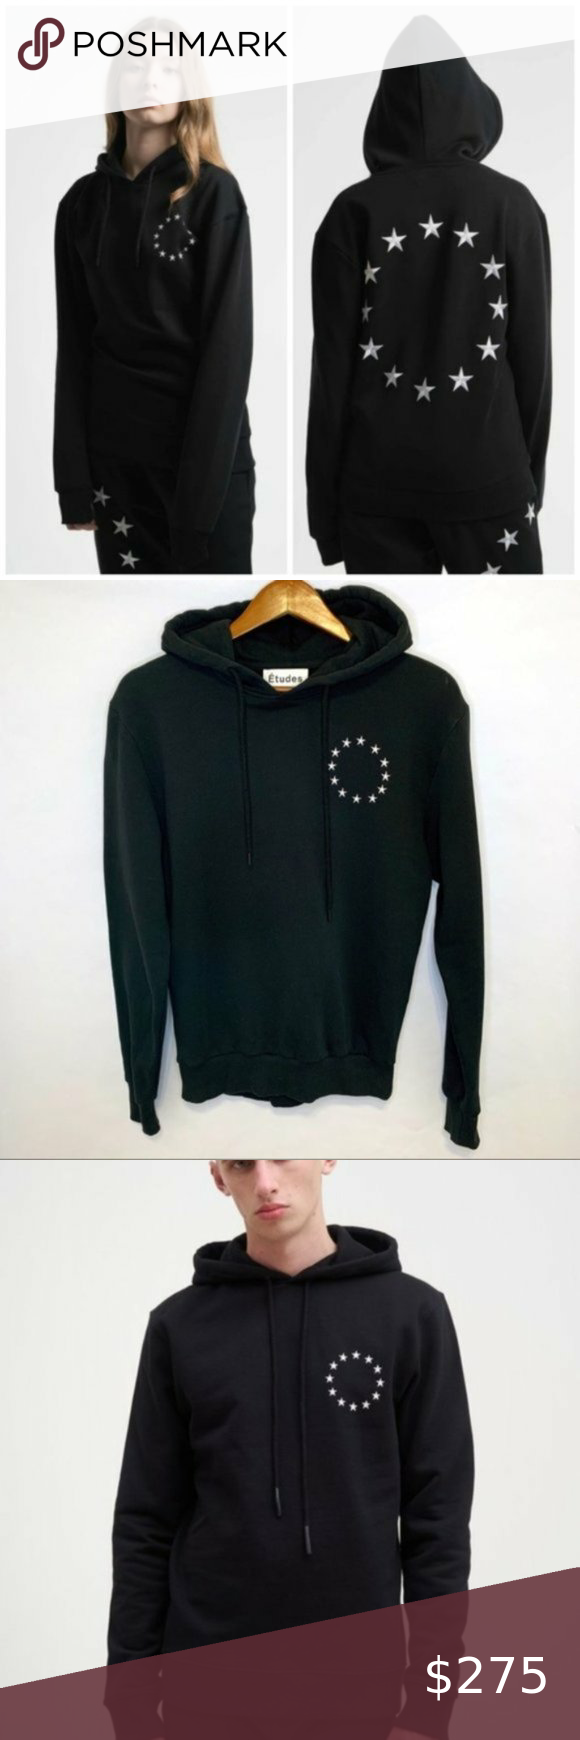 Rare Etudes Black Klein Europa Star Hoodie Small Size Small Measurements Approx Chest 19 Le Sweatshirt Tops Knit Turtleneck Sweater Cream Sweater Cardigan